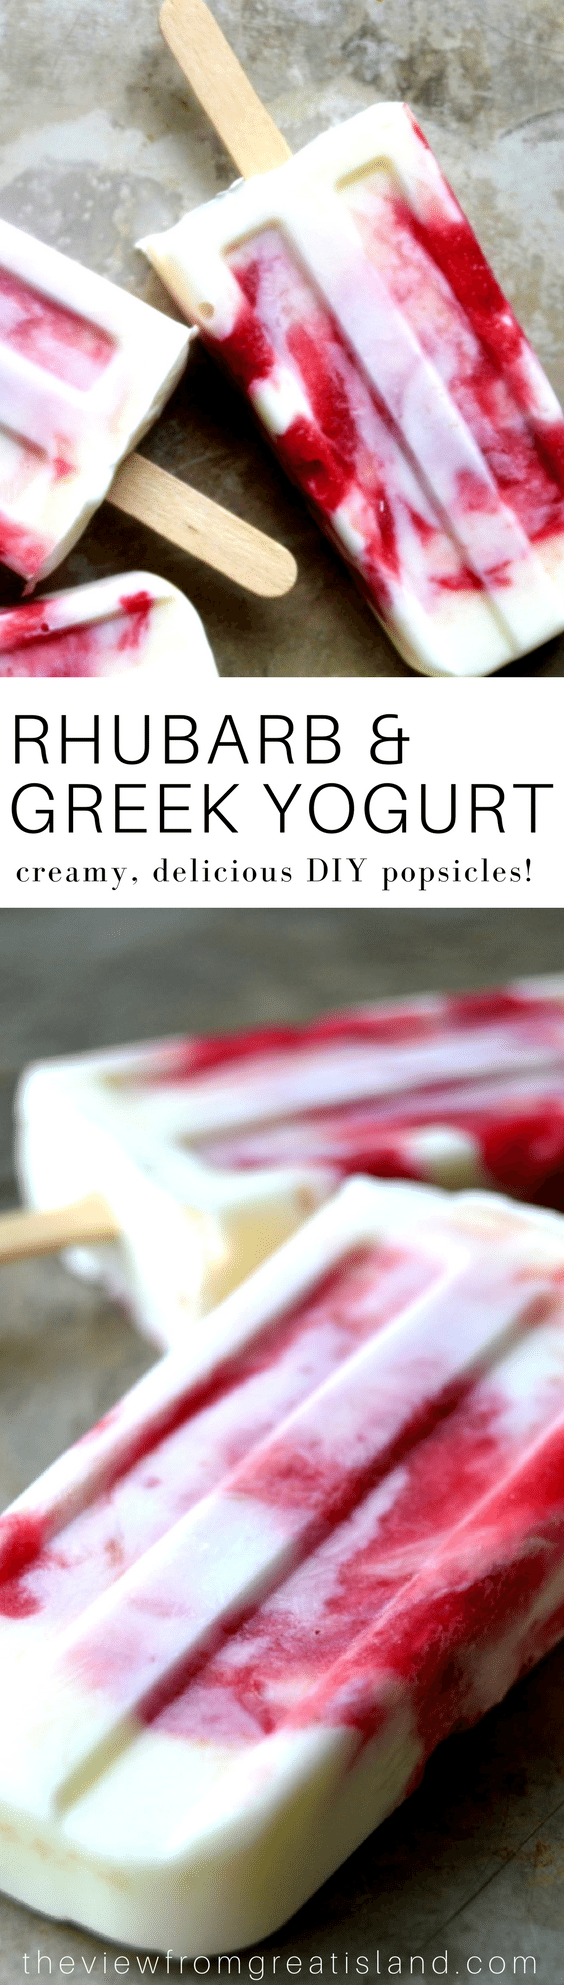 These popsicles have tart rhubarb jam marbled through rich (full fat!) Greek yogurt--they taste like the most perfect bowl of fruit and yogurt you've ever eaten! #diypopsicles #popsicles #rhubarb #greekyogurt #healthydessert #summer #fruit #yogurtpopsicles